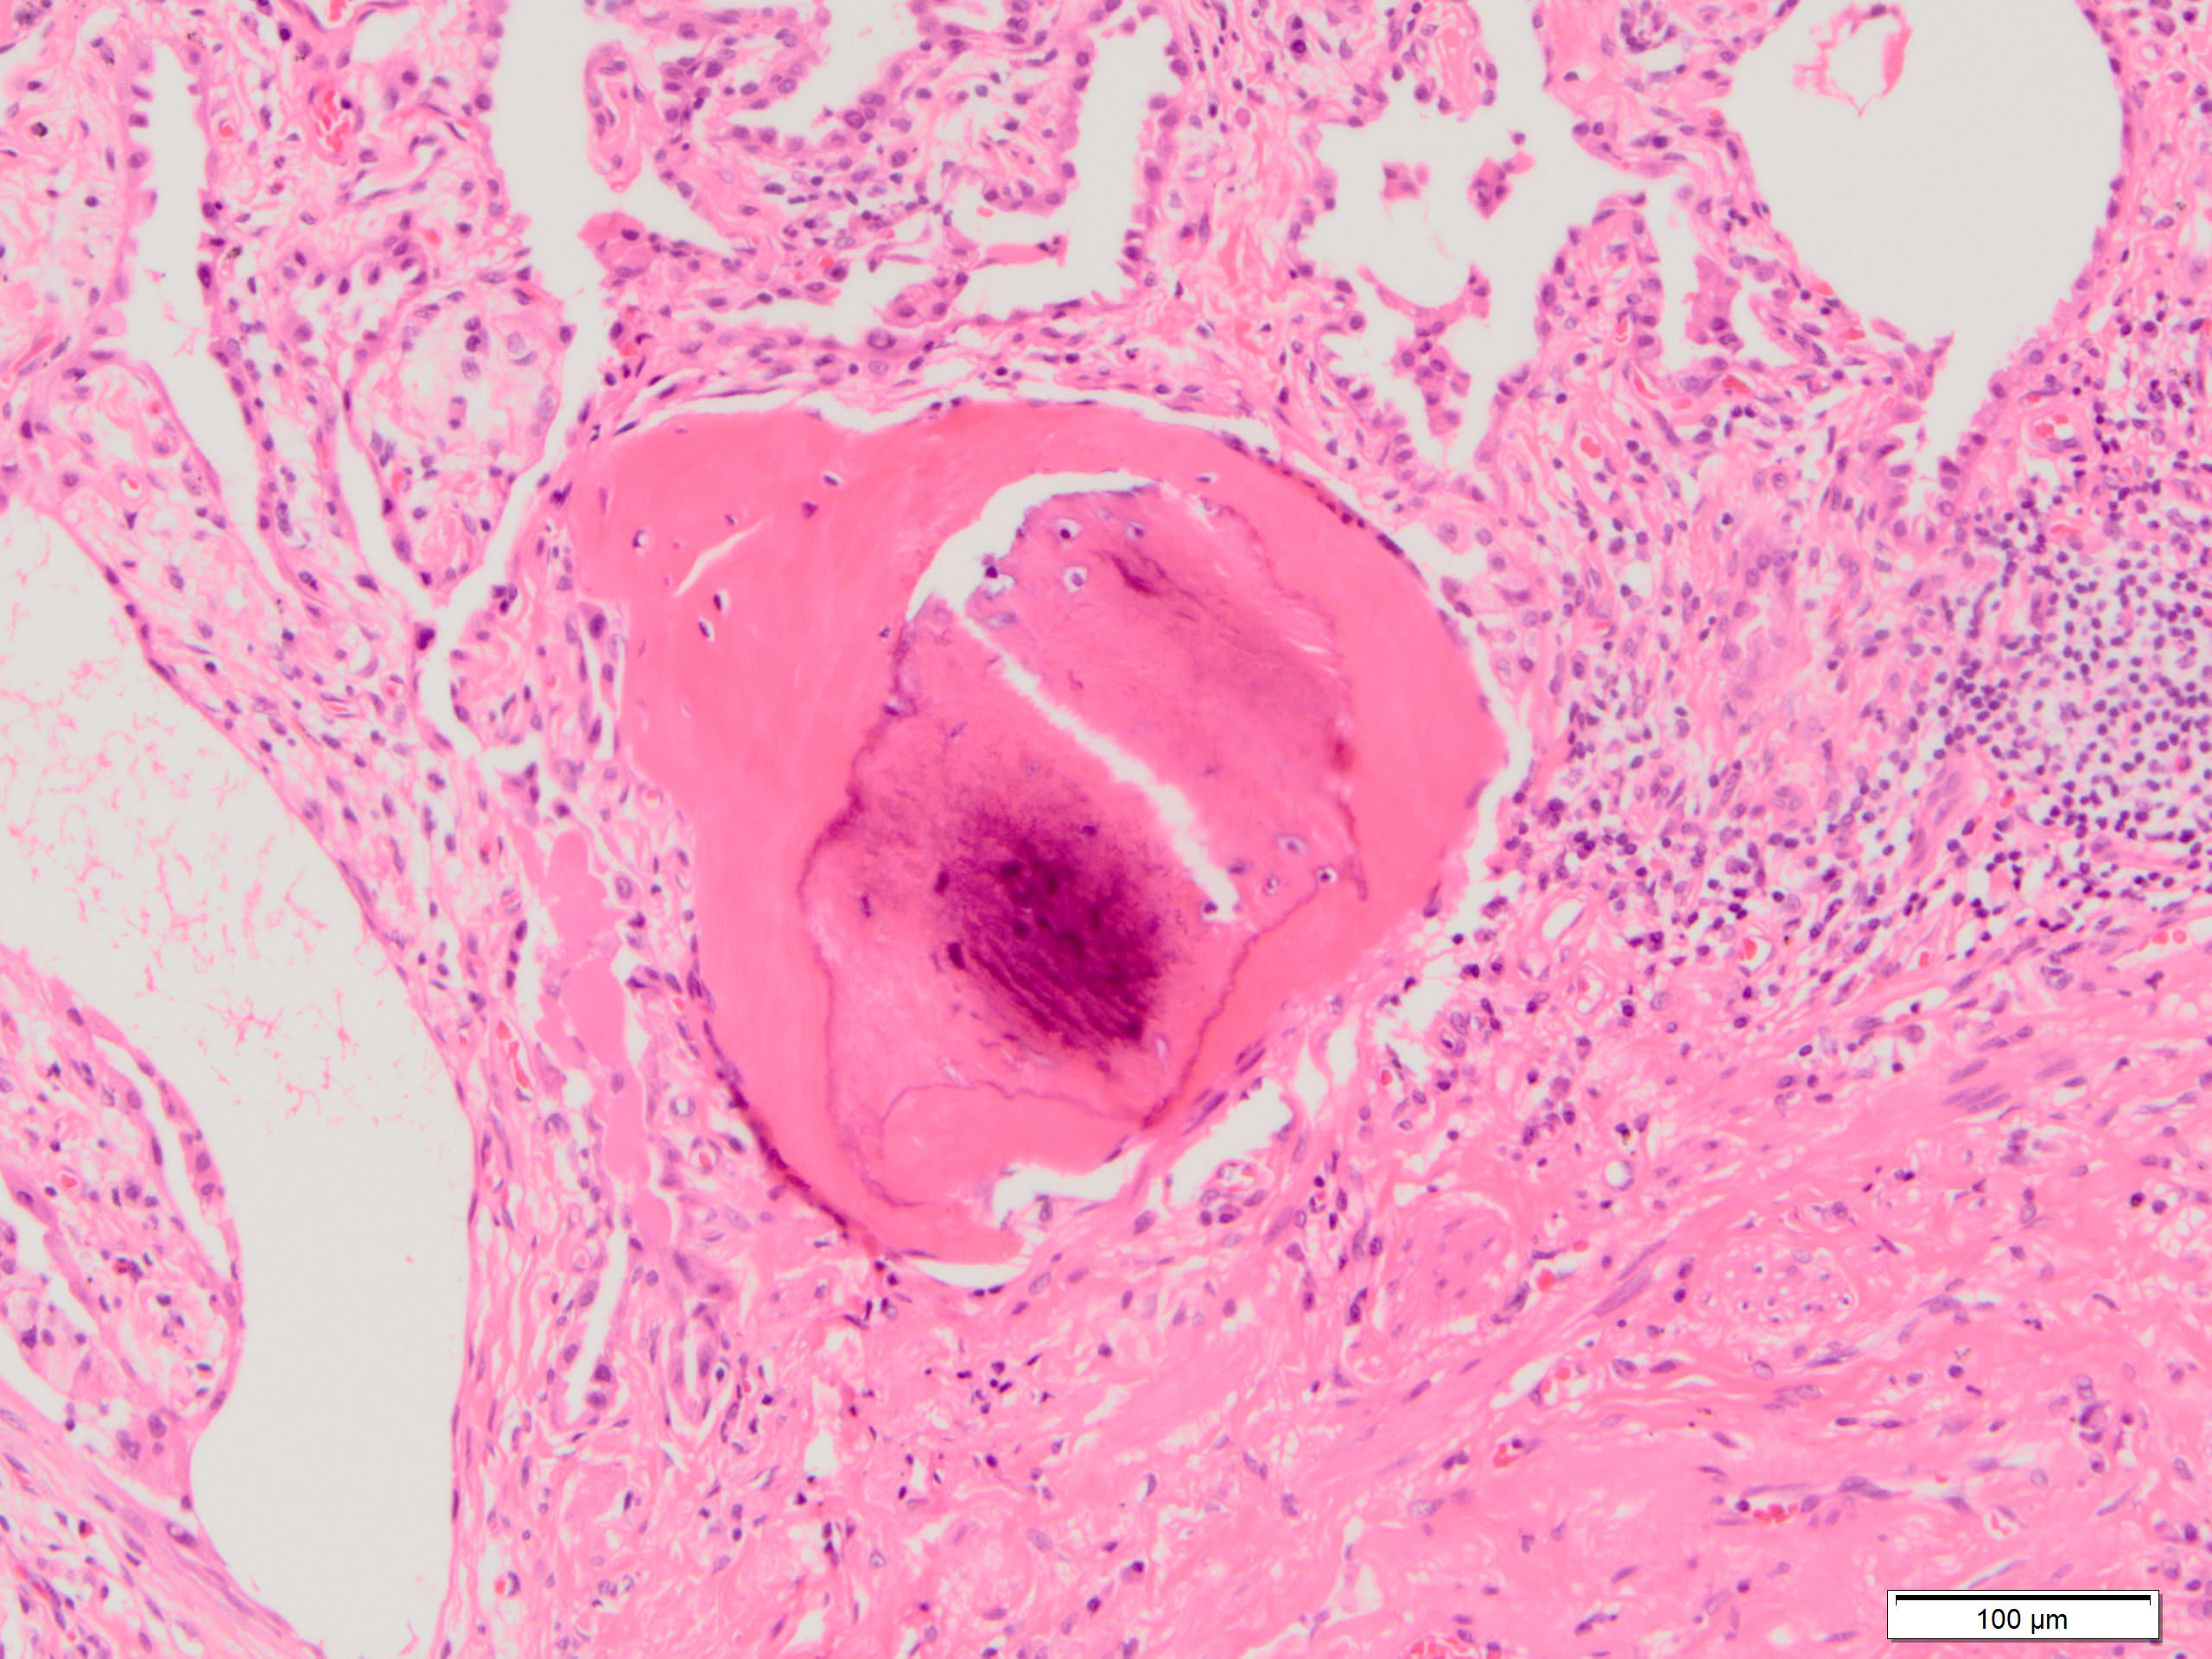 Bone metaplasia